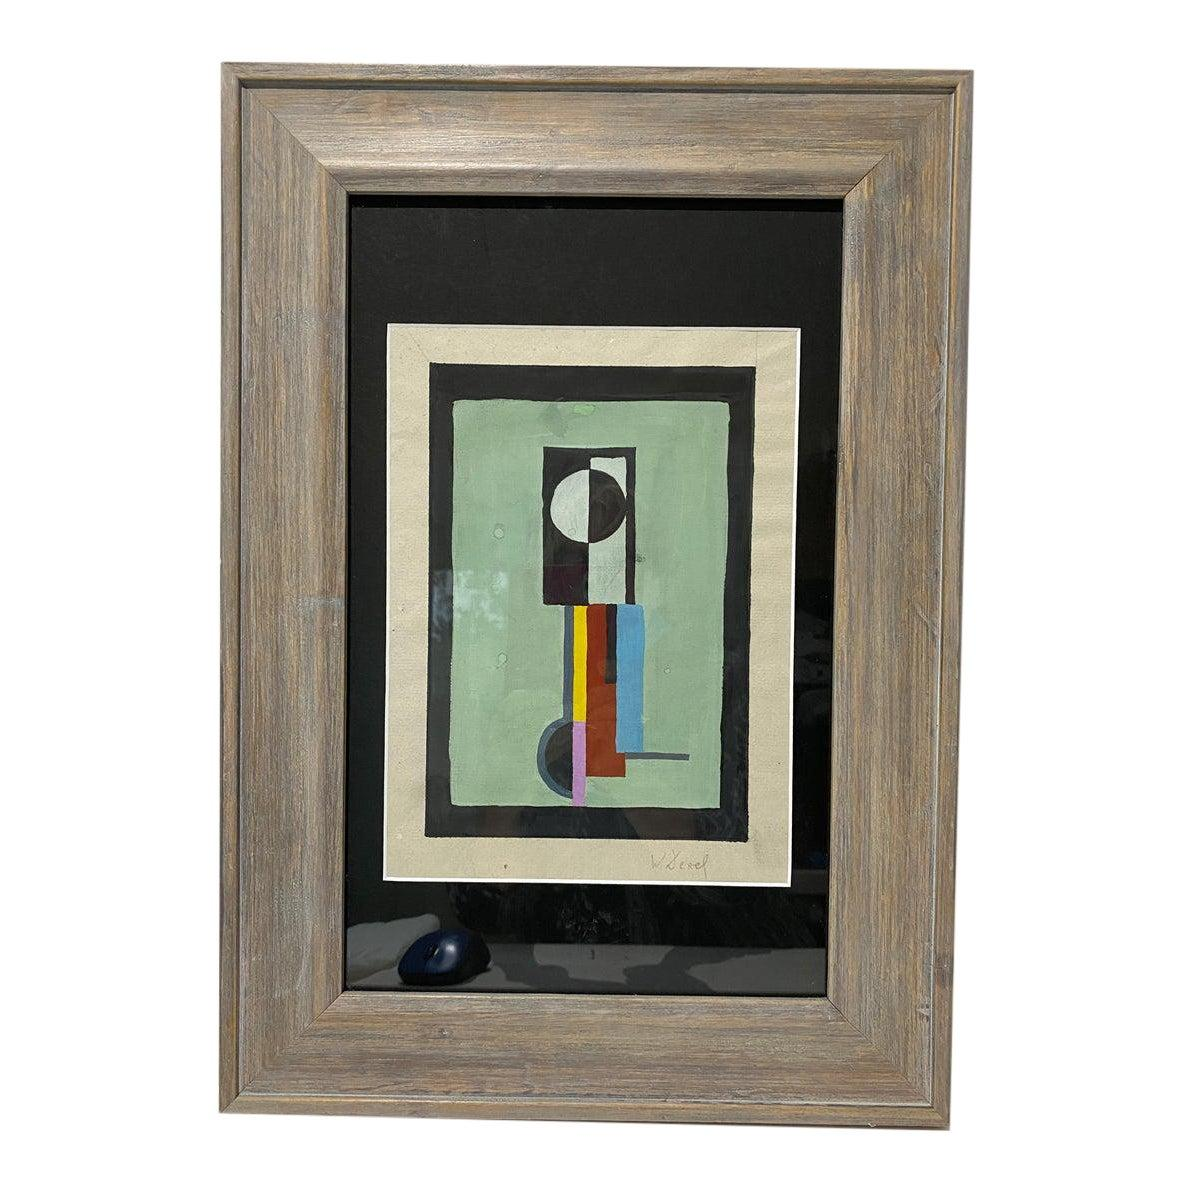 Bauhaus Abstract Painting by Walter Dexel